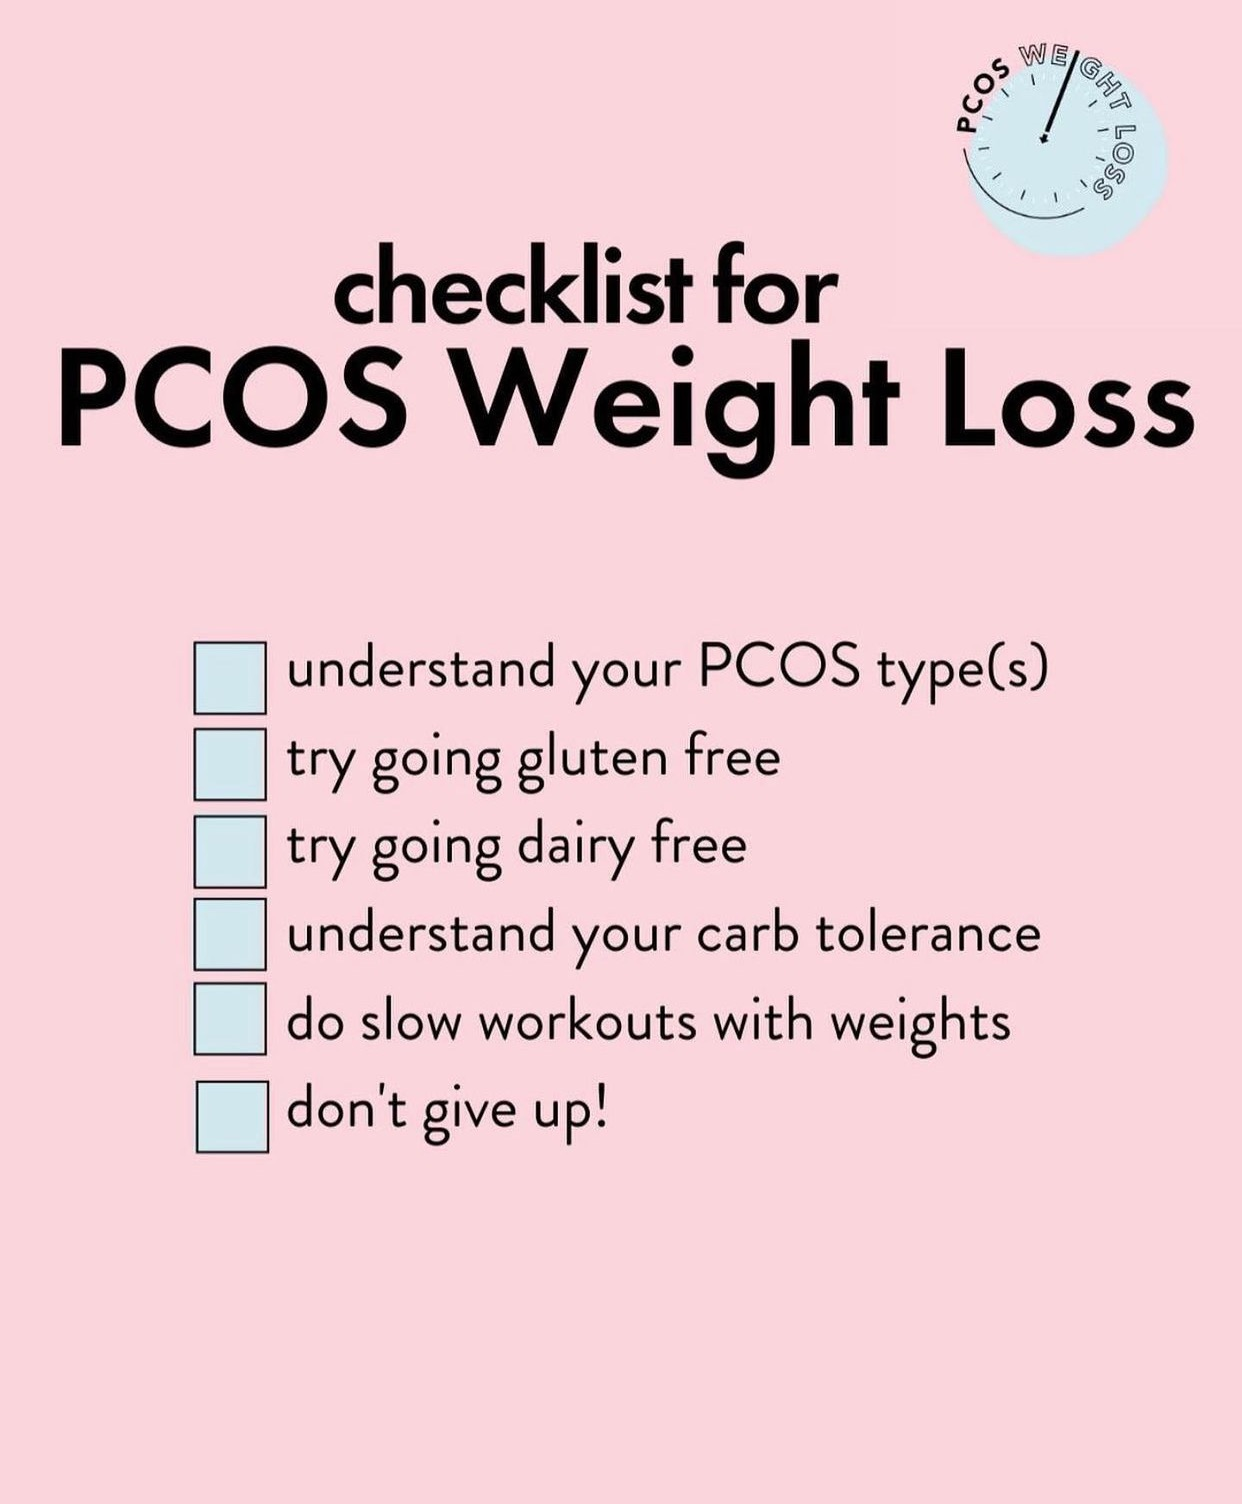 12 Tips to lose weight with PCOS